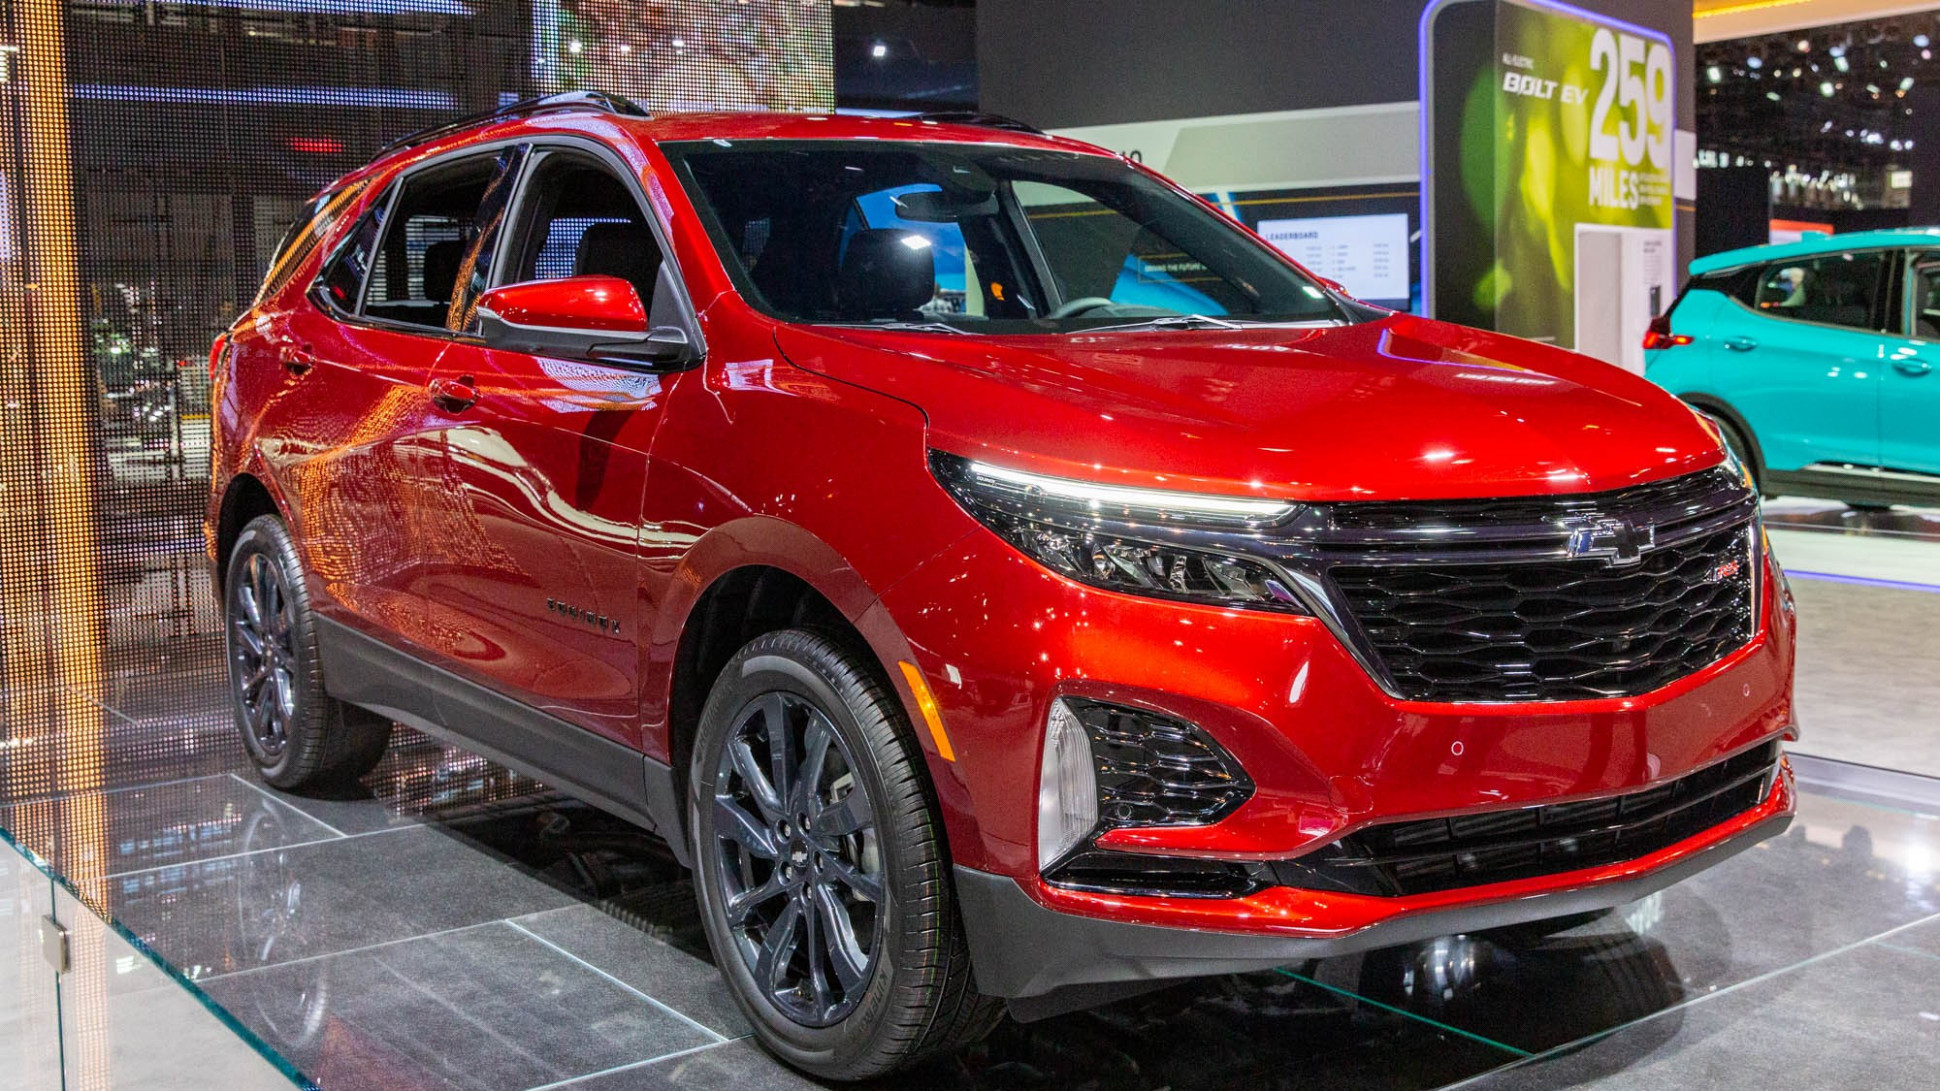 Auto Shows – News from Auto Shows around the World - Motor Authority